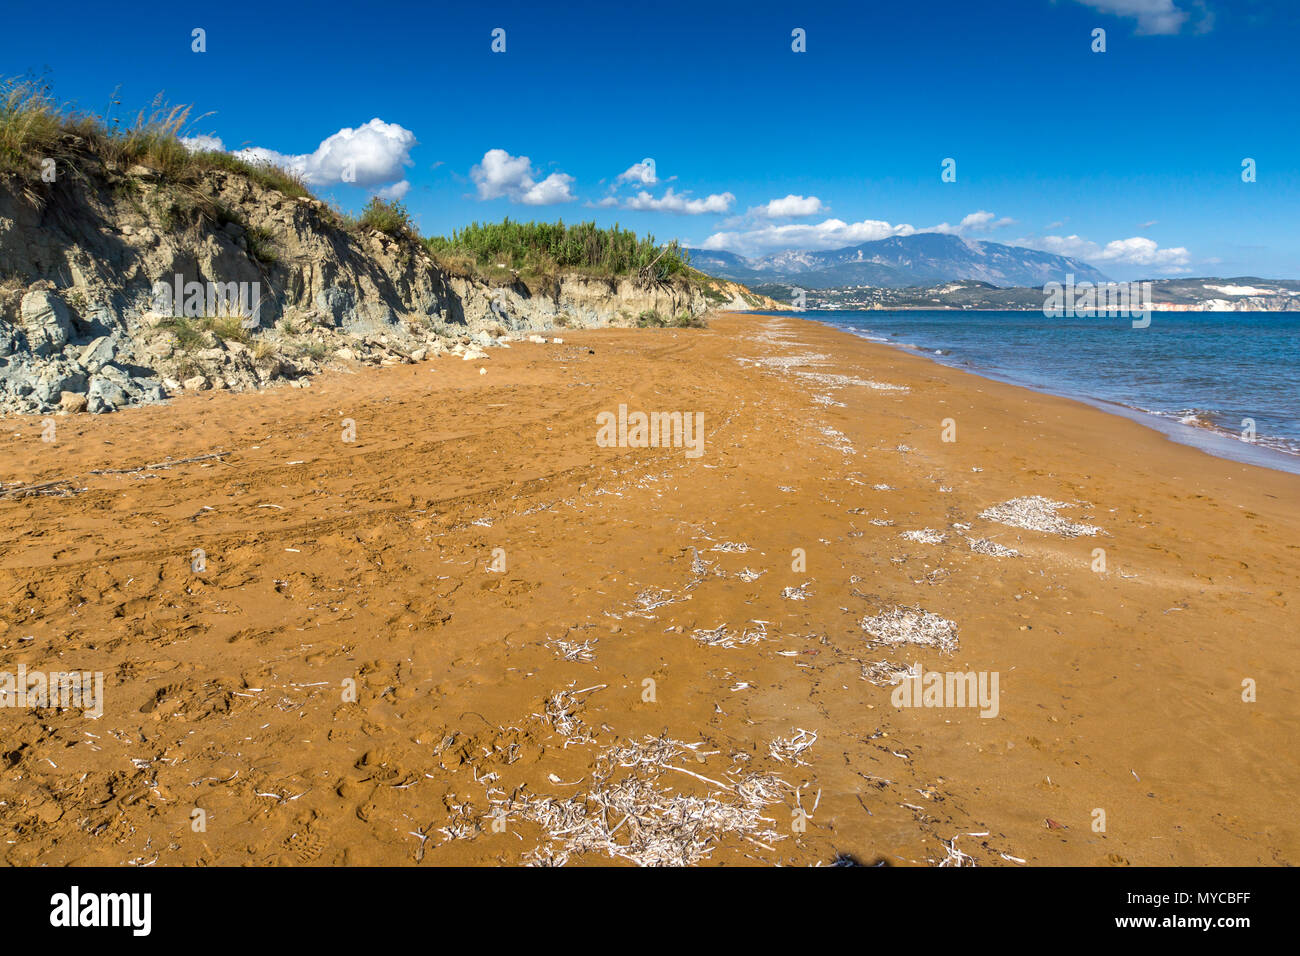 Panoramic view of Xi Beach, beach with red sand in Kefalonia, Ionian islands, Greece - Stock Image